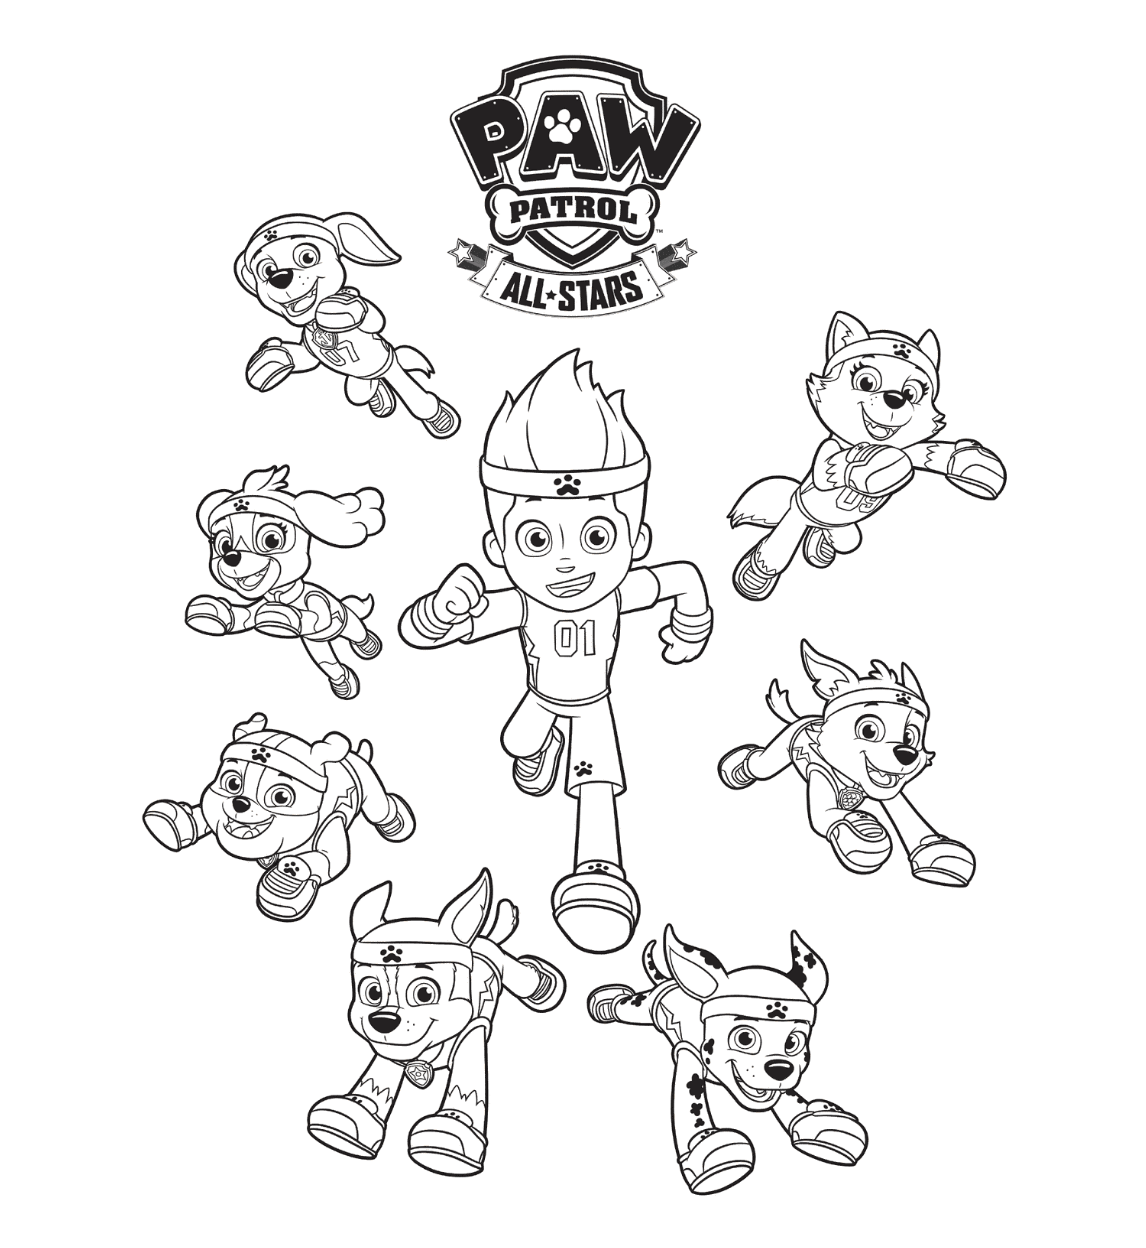 Paw Patrol All Stars Coloring Page Coloring Pages Pinterest